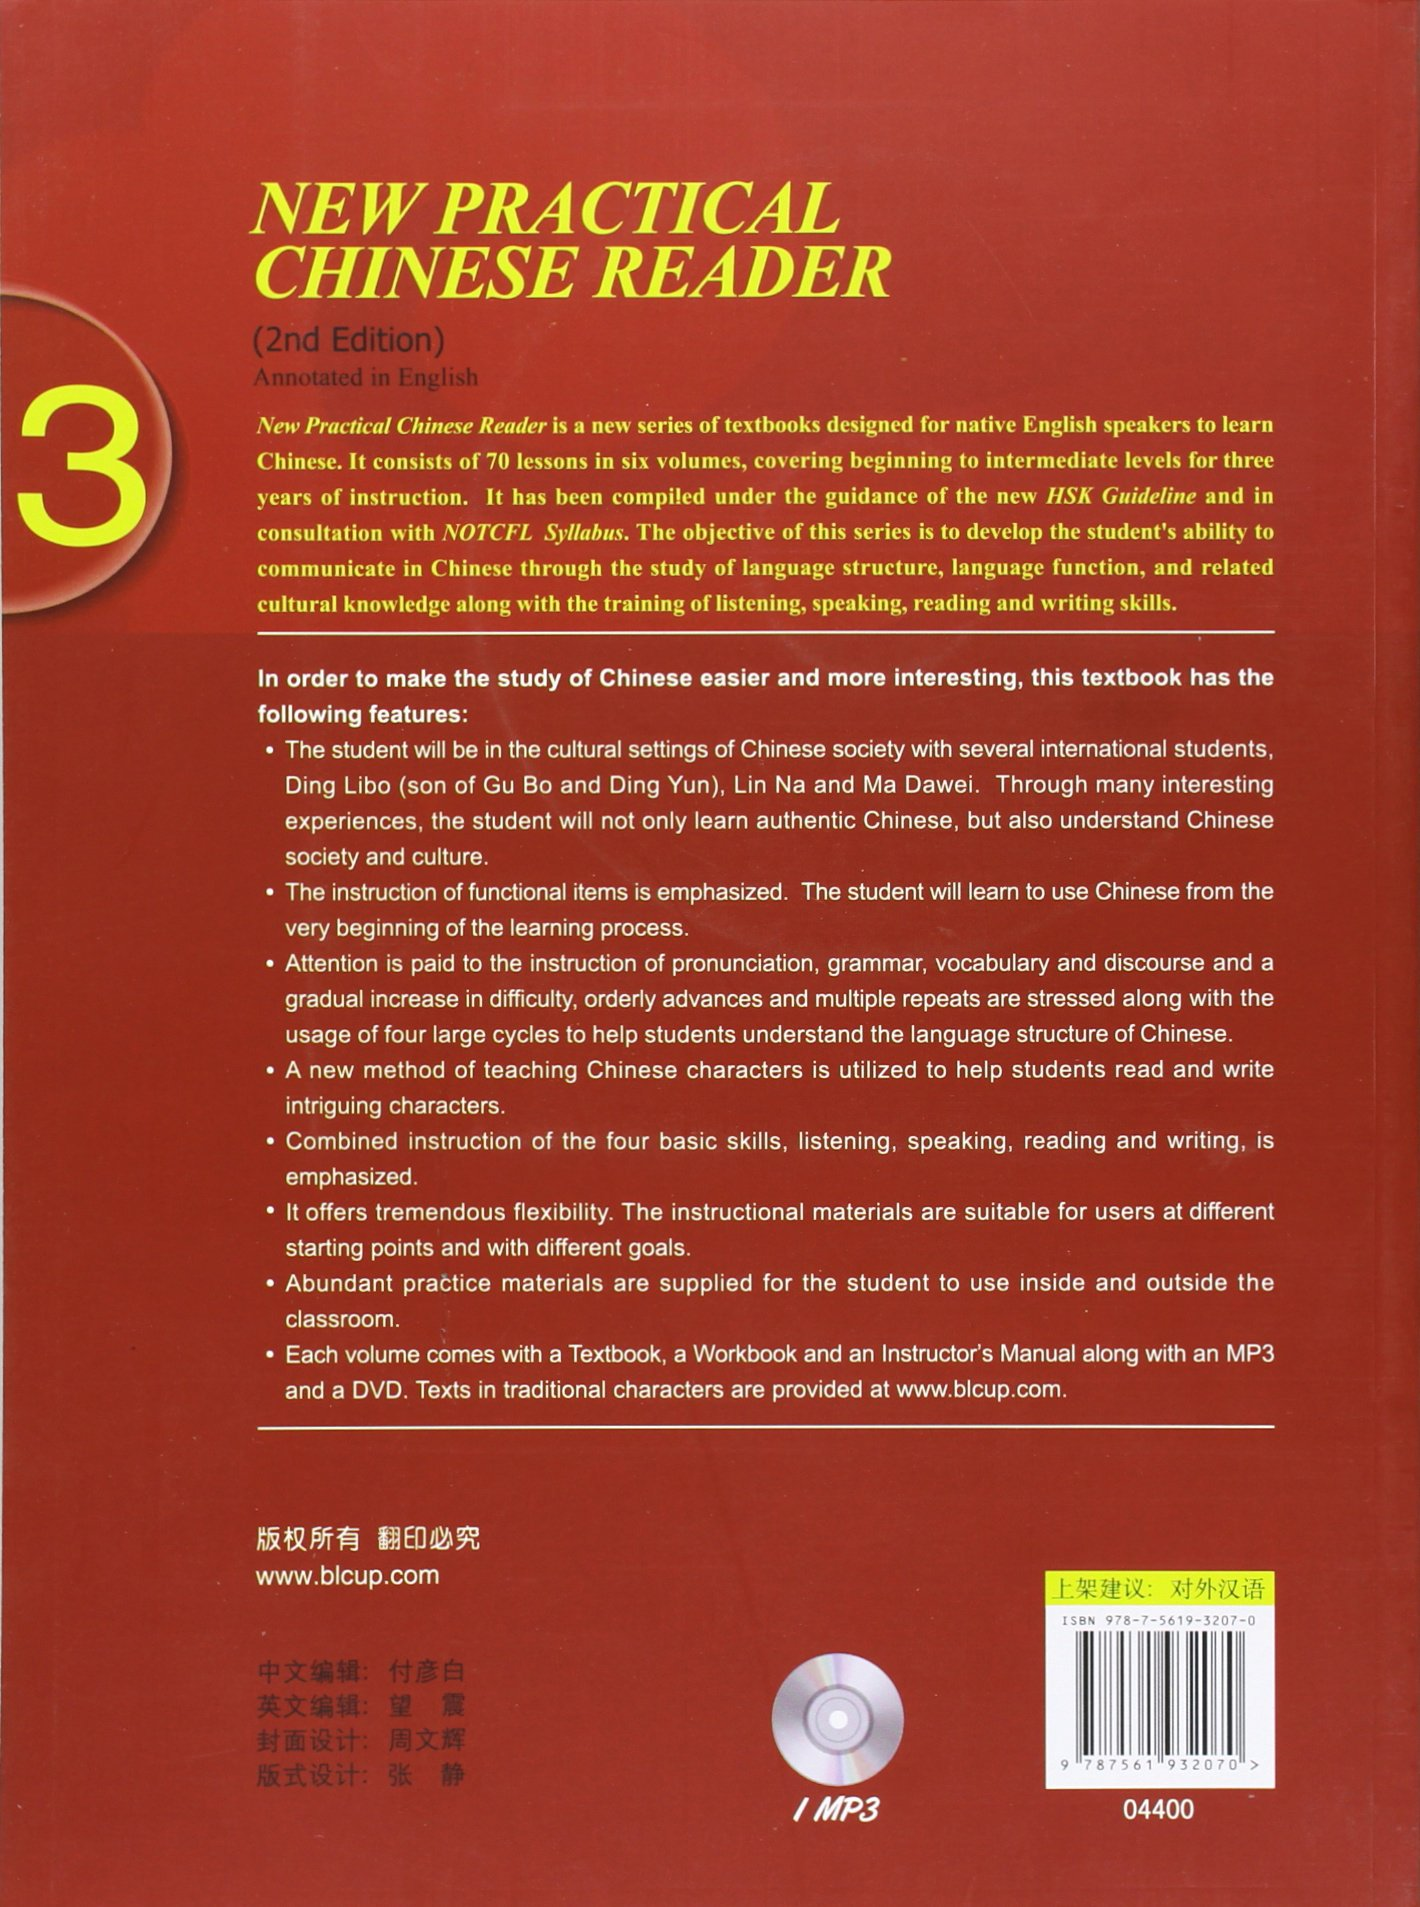 New practical chinese reader 2nd edition workbook 3 chinese new practical chinese reader 2nd edition workbook 3 chinese edition english and chinese edition liu xun 9787561932070 amazon books fandeluxe Images